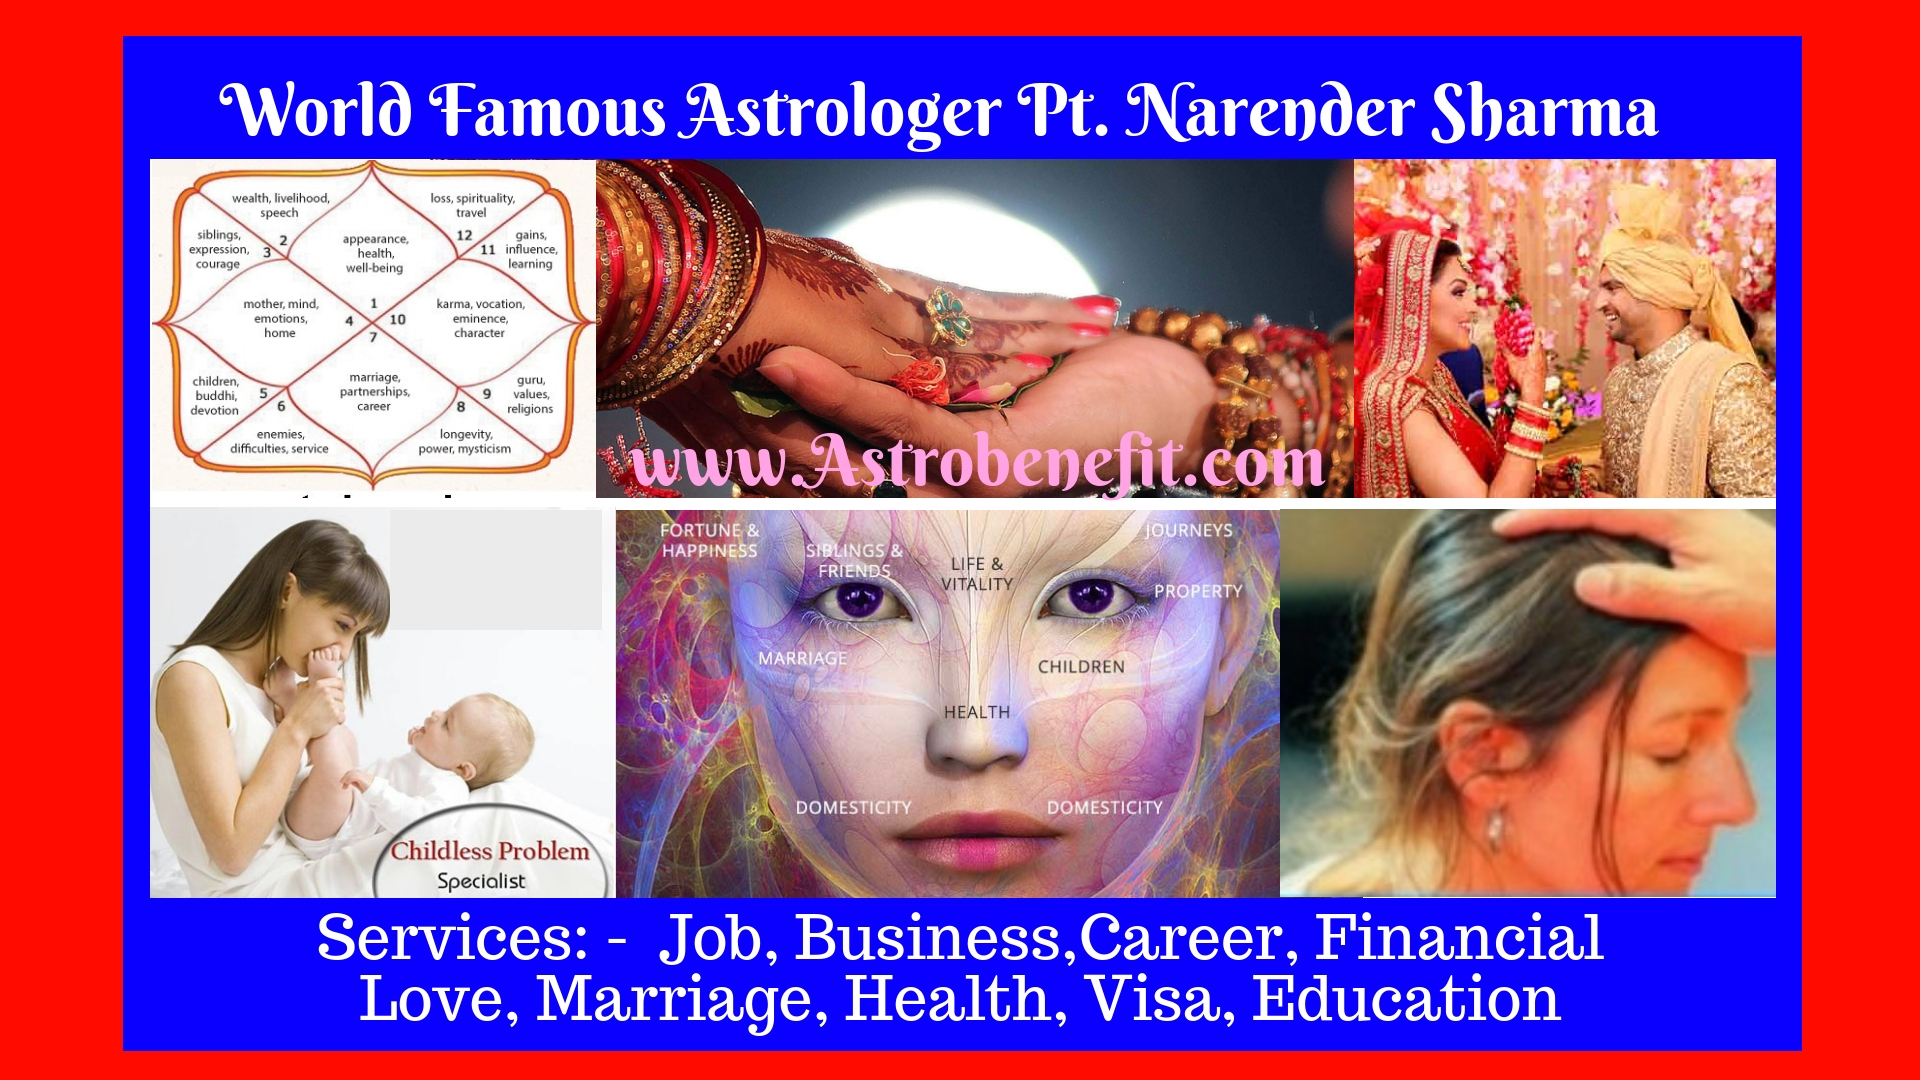 Best Psychic/Astrologer In New York N Y +1-315-375-2207 Pt.N K Sharma